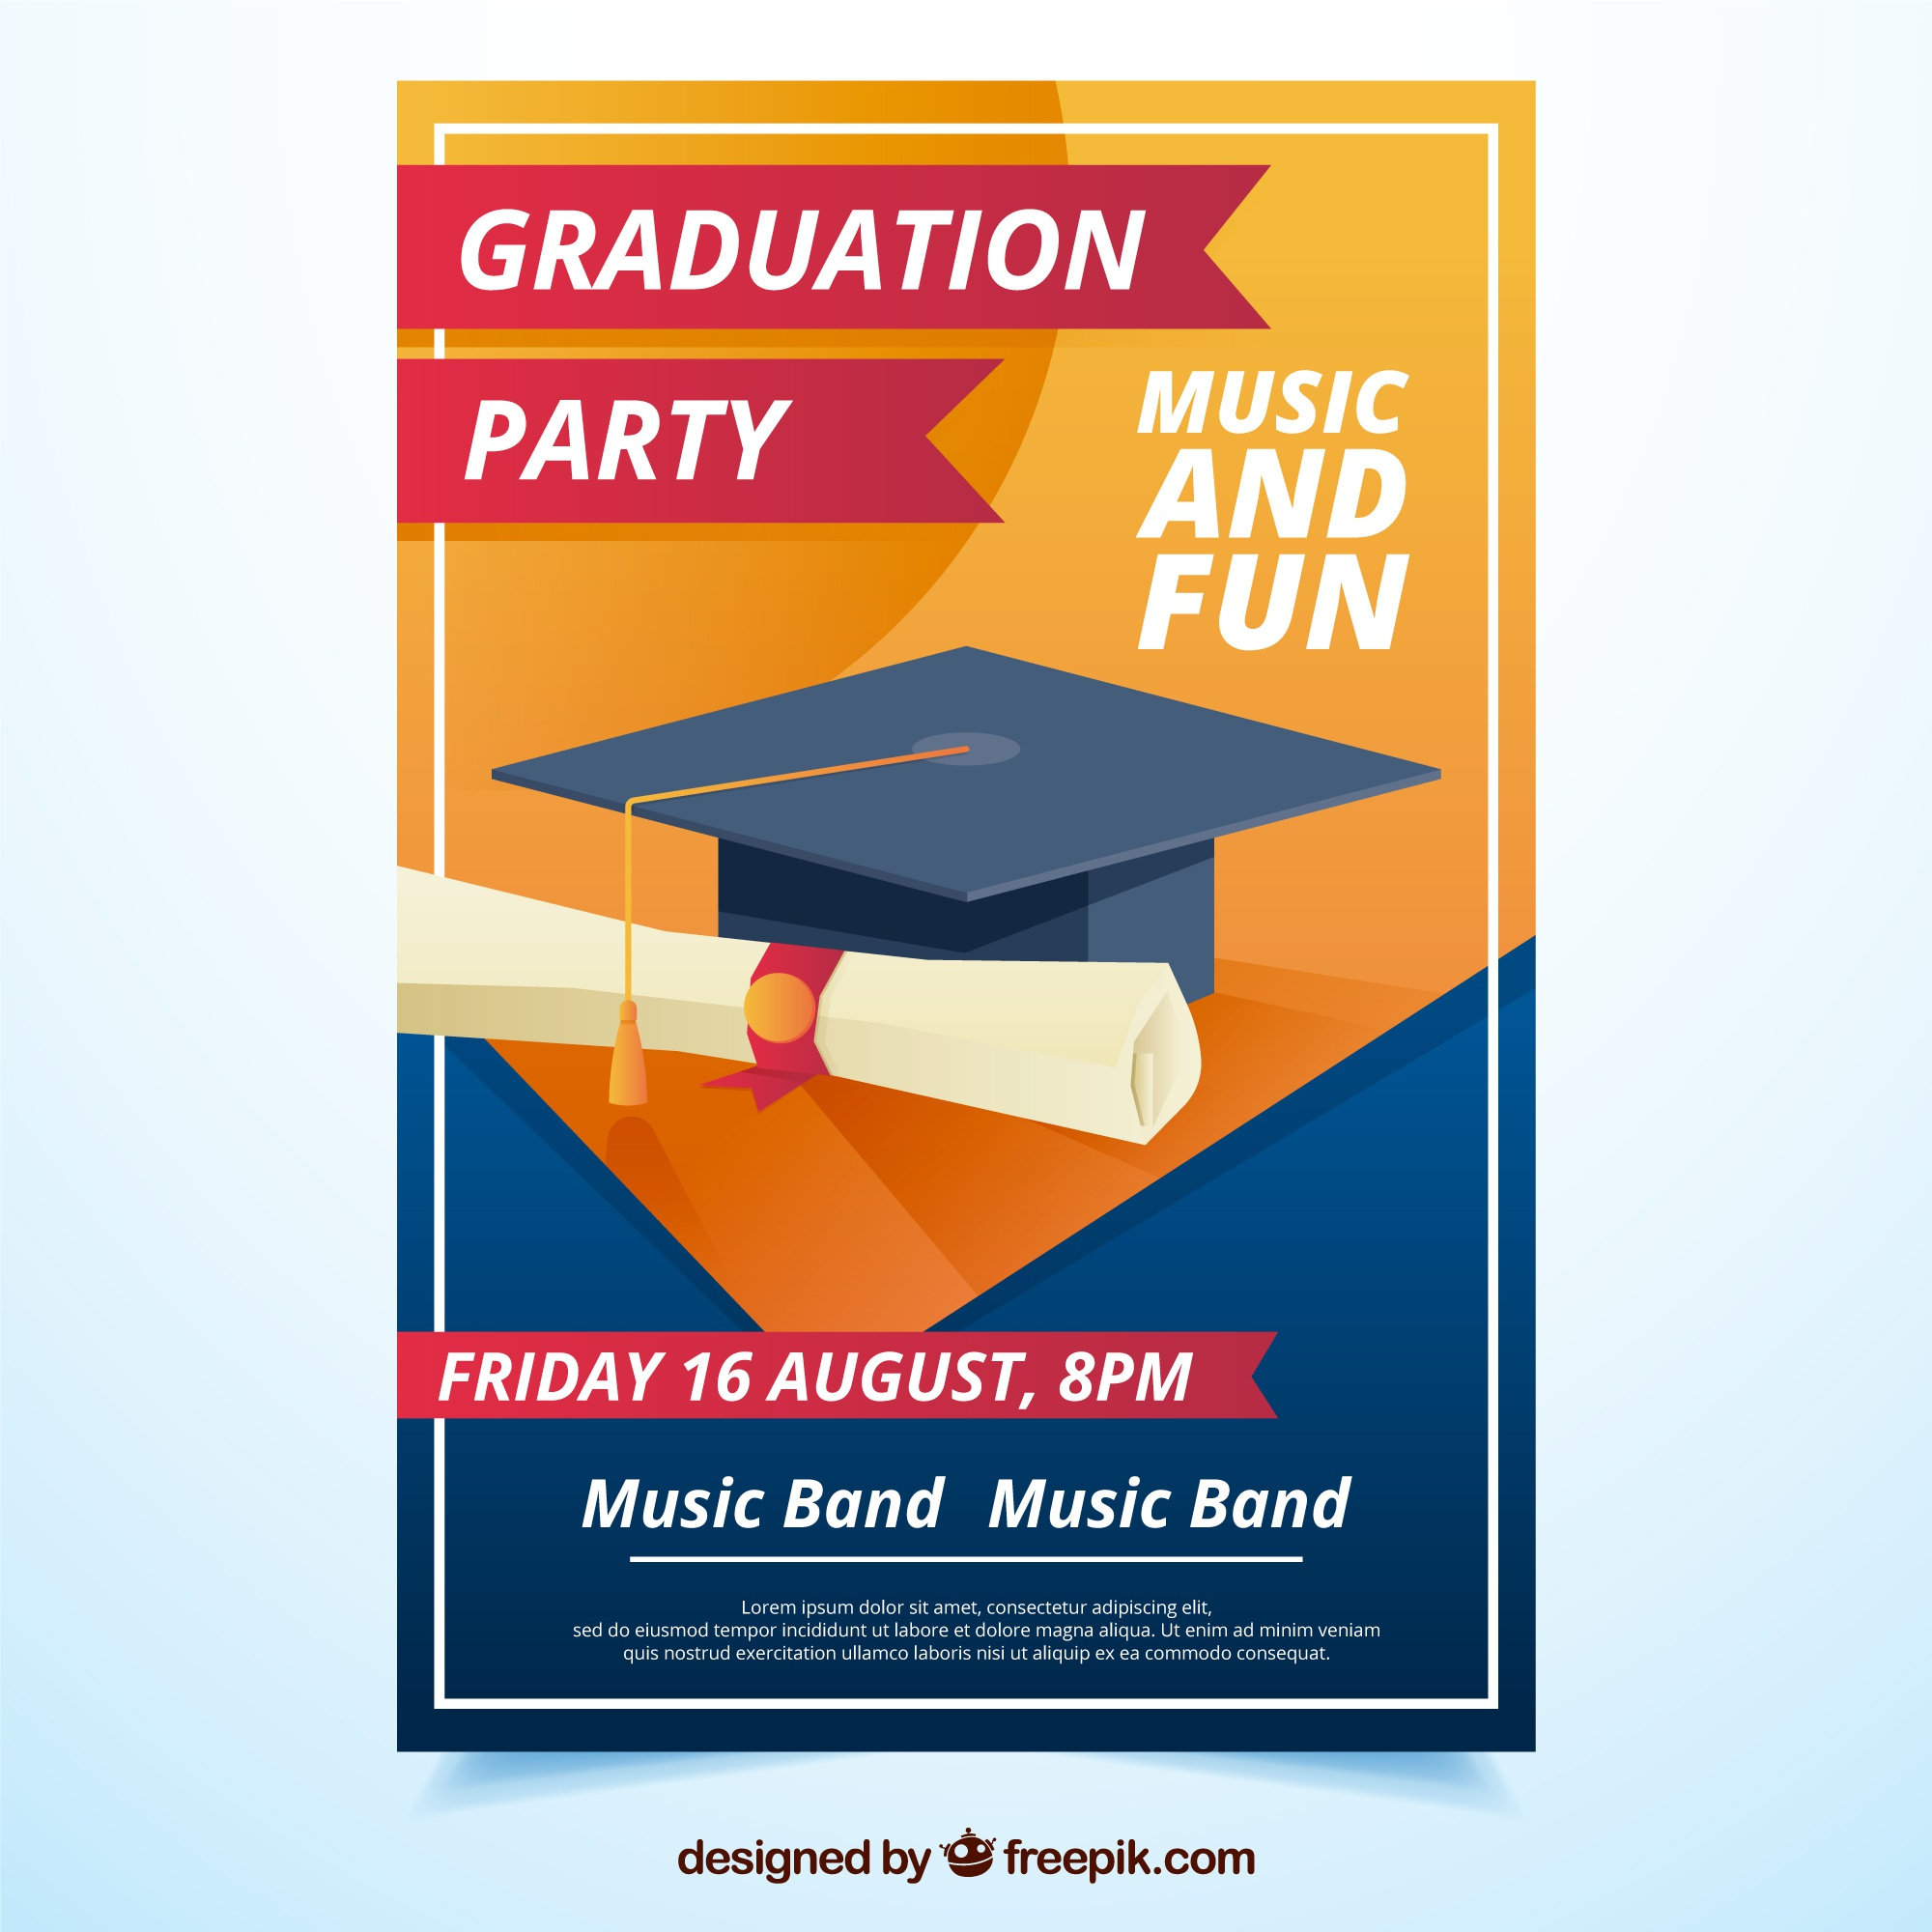 Graduation party flyer with diploma and graduation cap